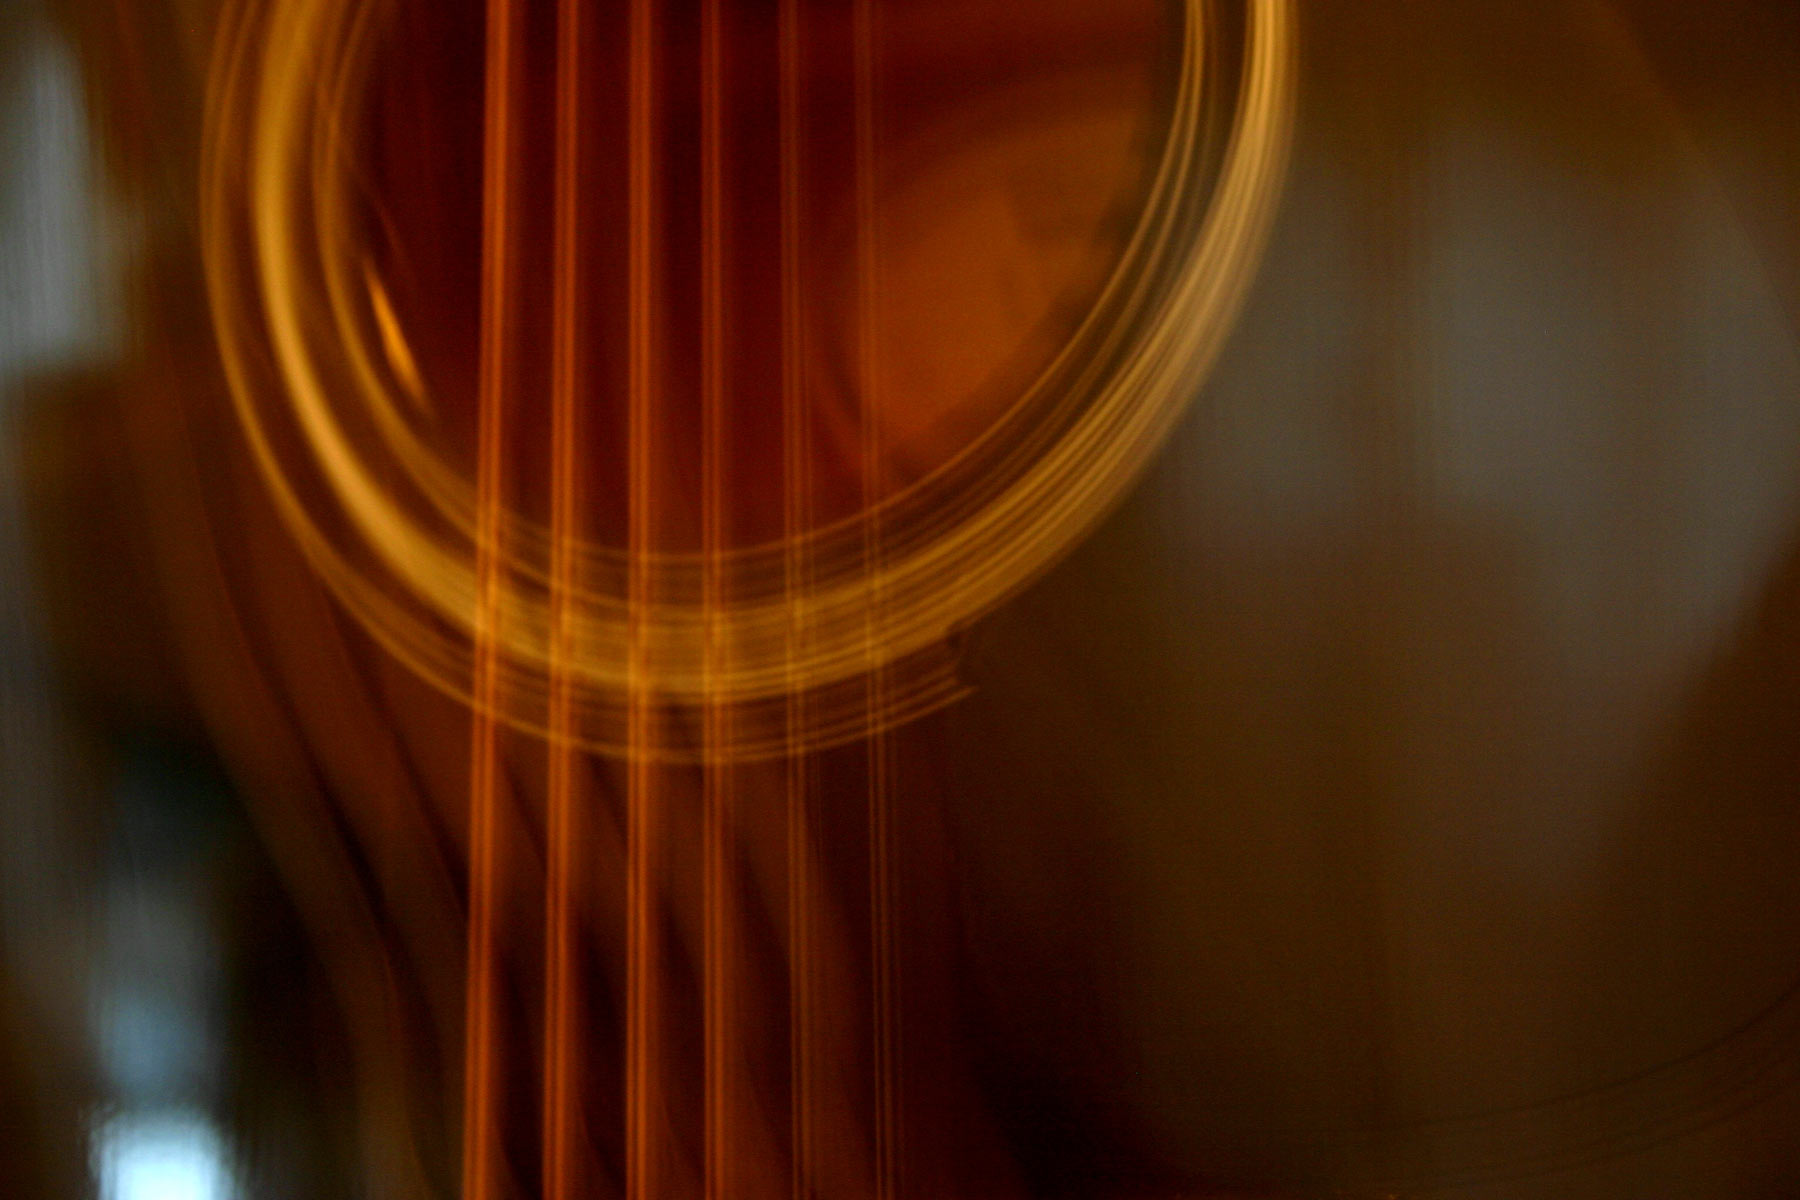 Guitar, Blurry, Instrument, Music, Strings, HQ Photo